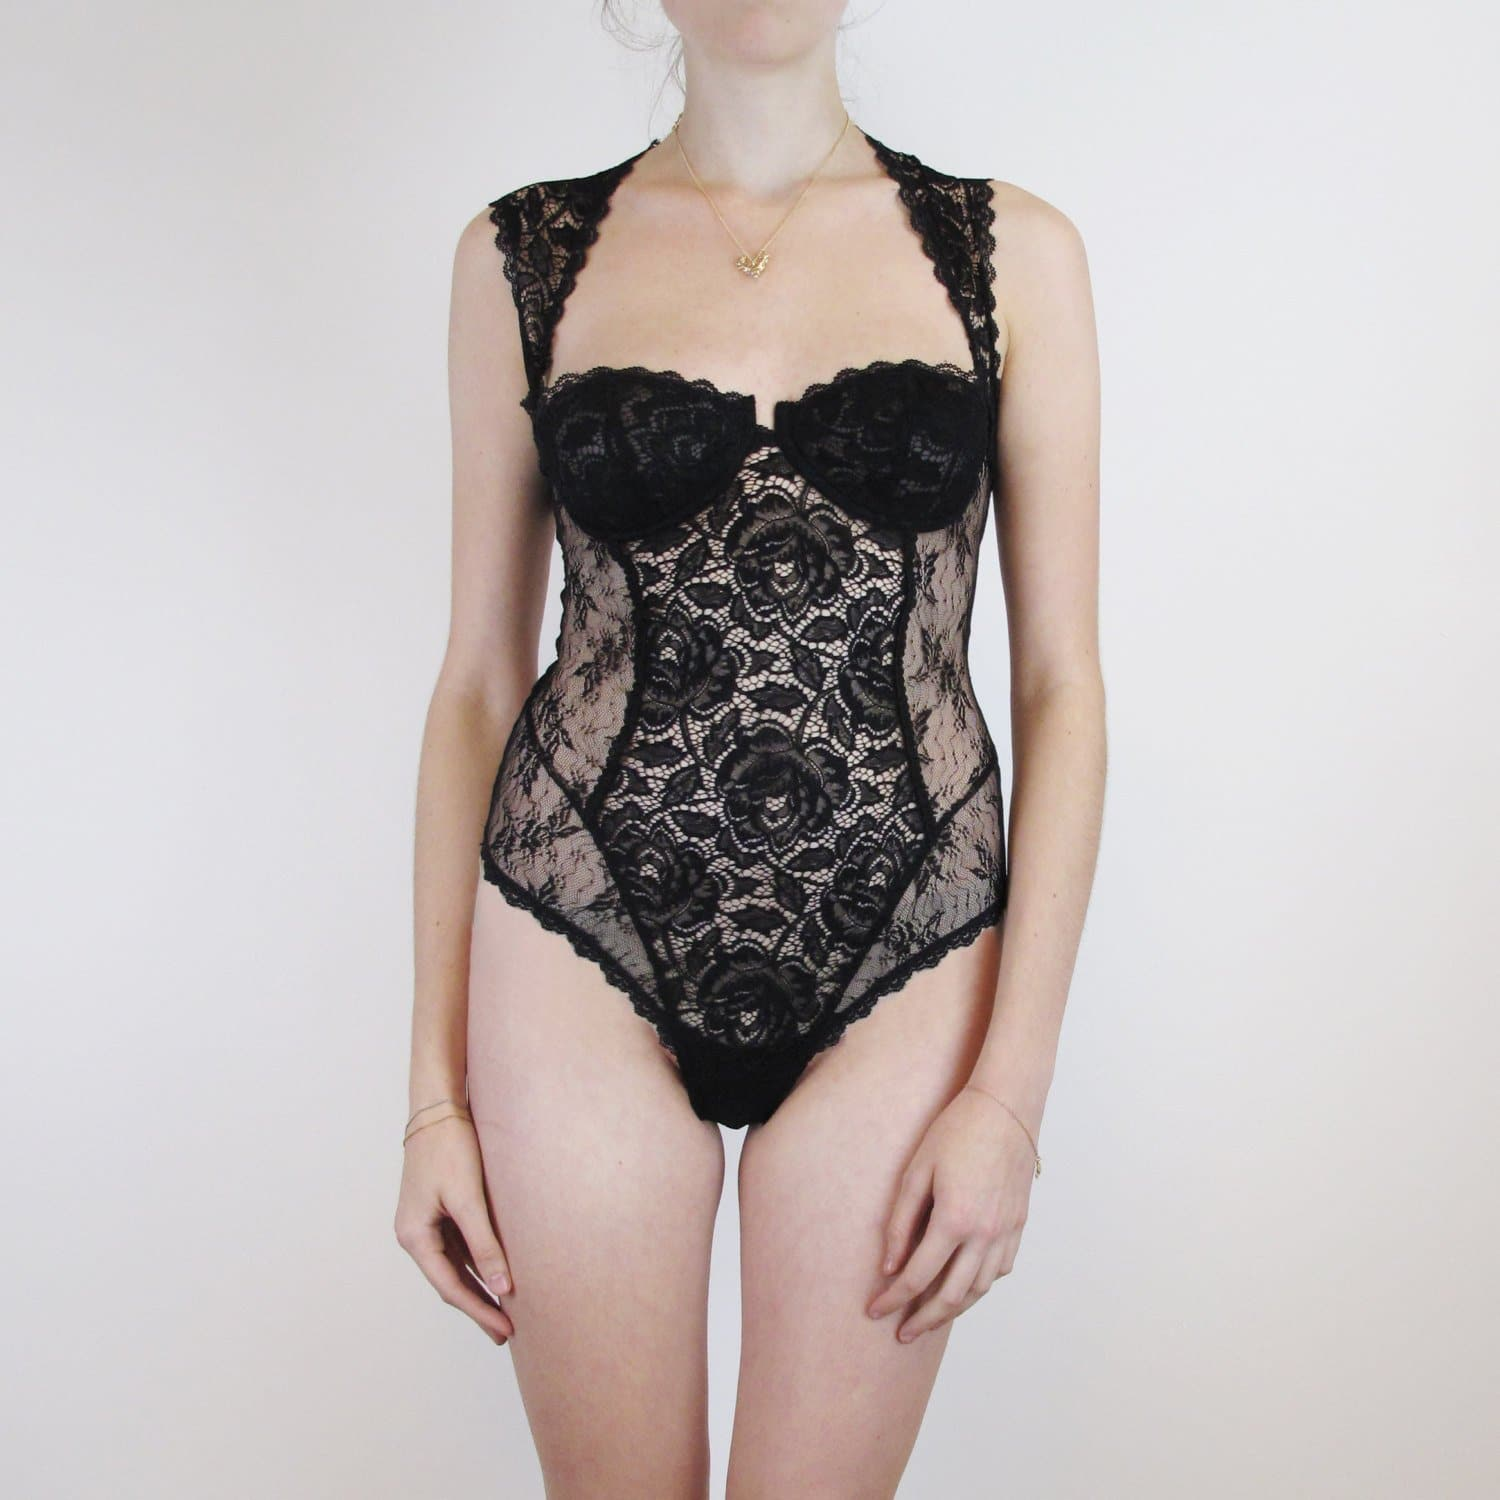 Lace bodysuit with underwired cup